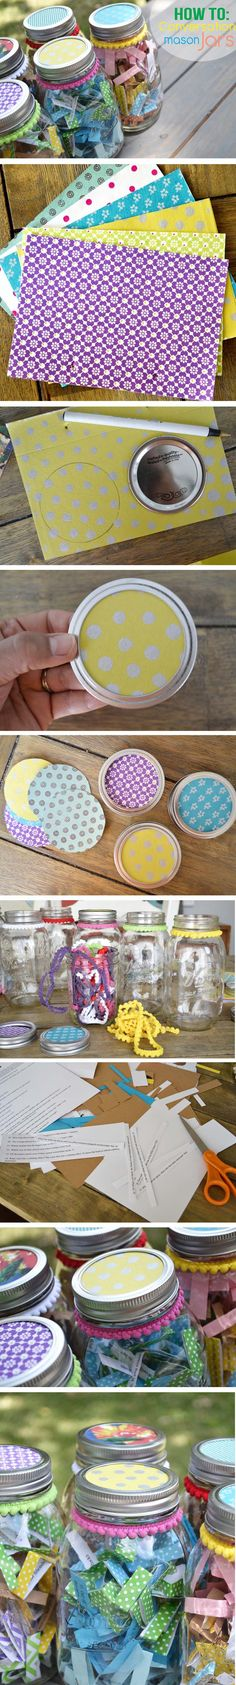 A great blog post about how to make Family Conversation Jars/table topics. And links to free printable table topics all ready to go!